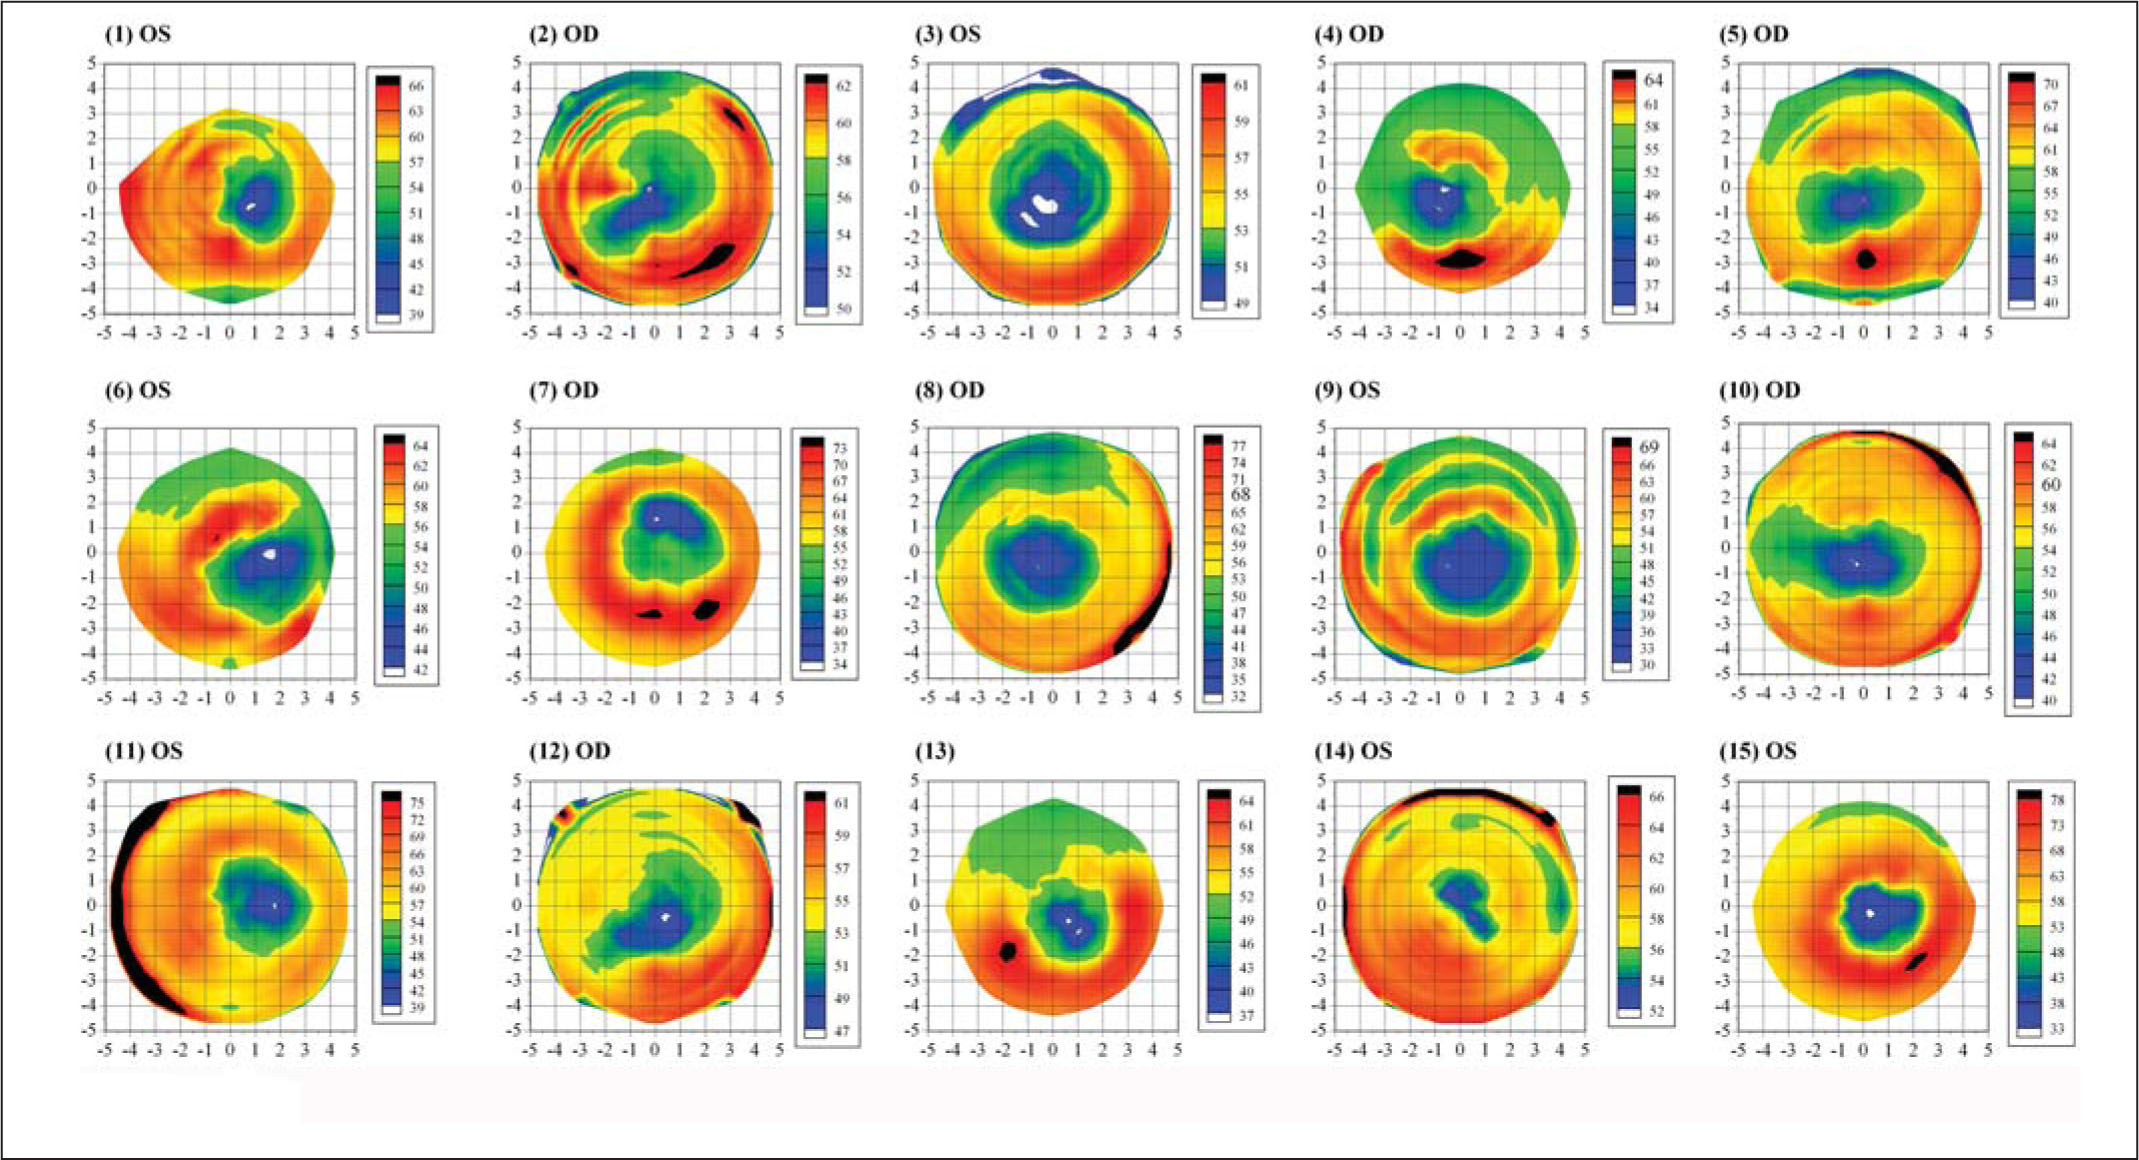 Epithelial Thickness Maps of 15 Randomly Selected Eyes Each Plotted with an Individual Color Scale Representing the Epithelial Thickness in Microns. A Cartesian 1-mm Grid Is Superimposed with the Origin at the Corneal Vertex.